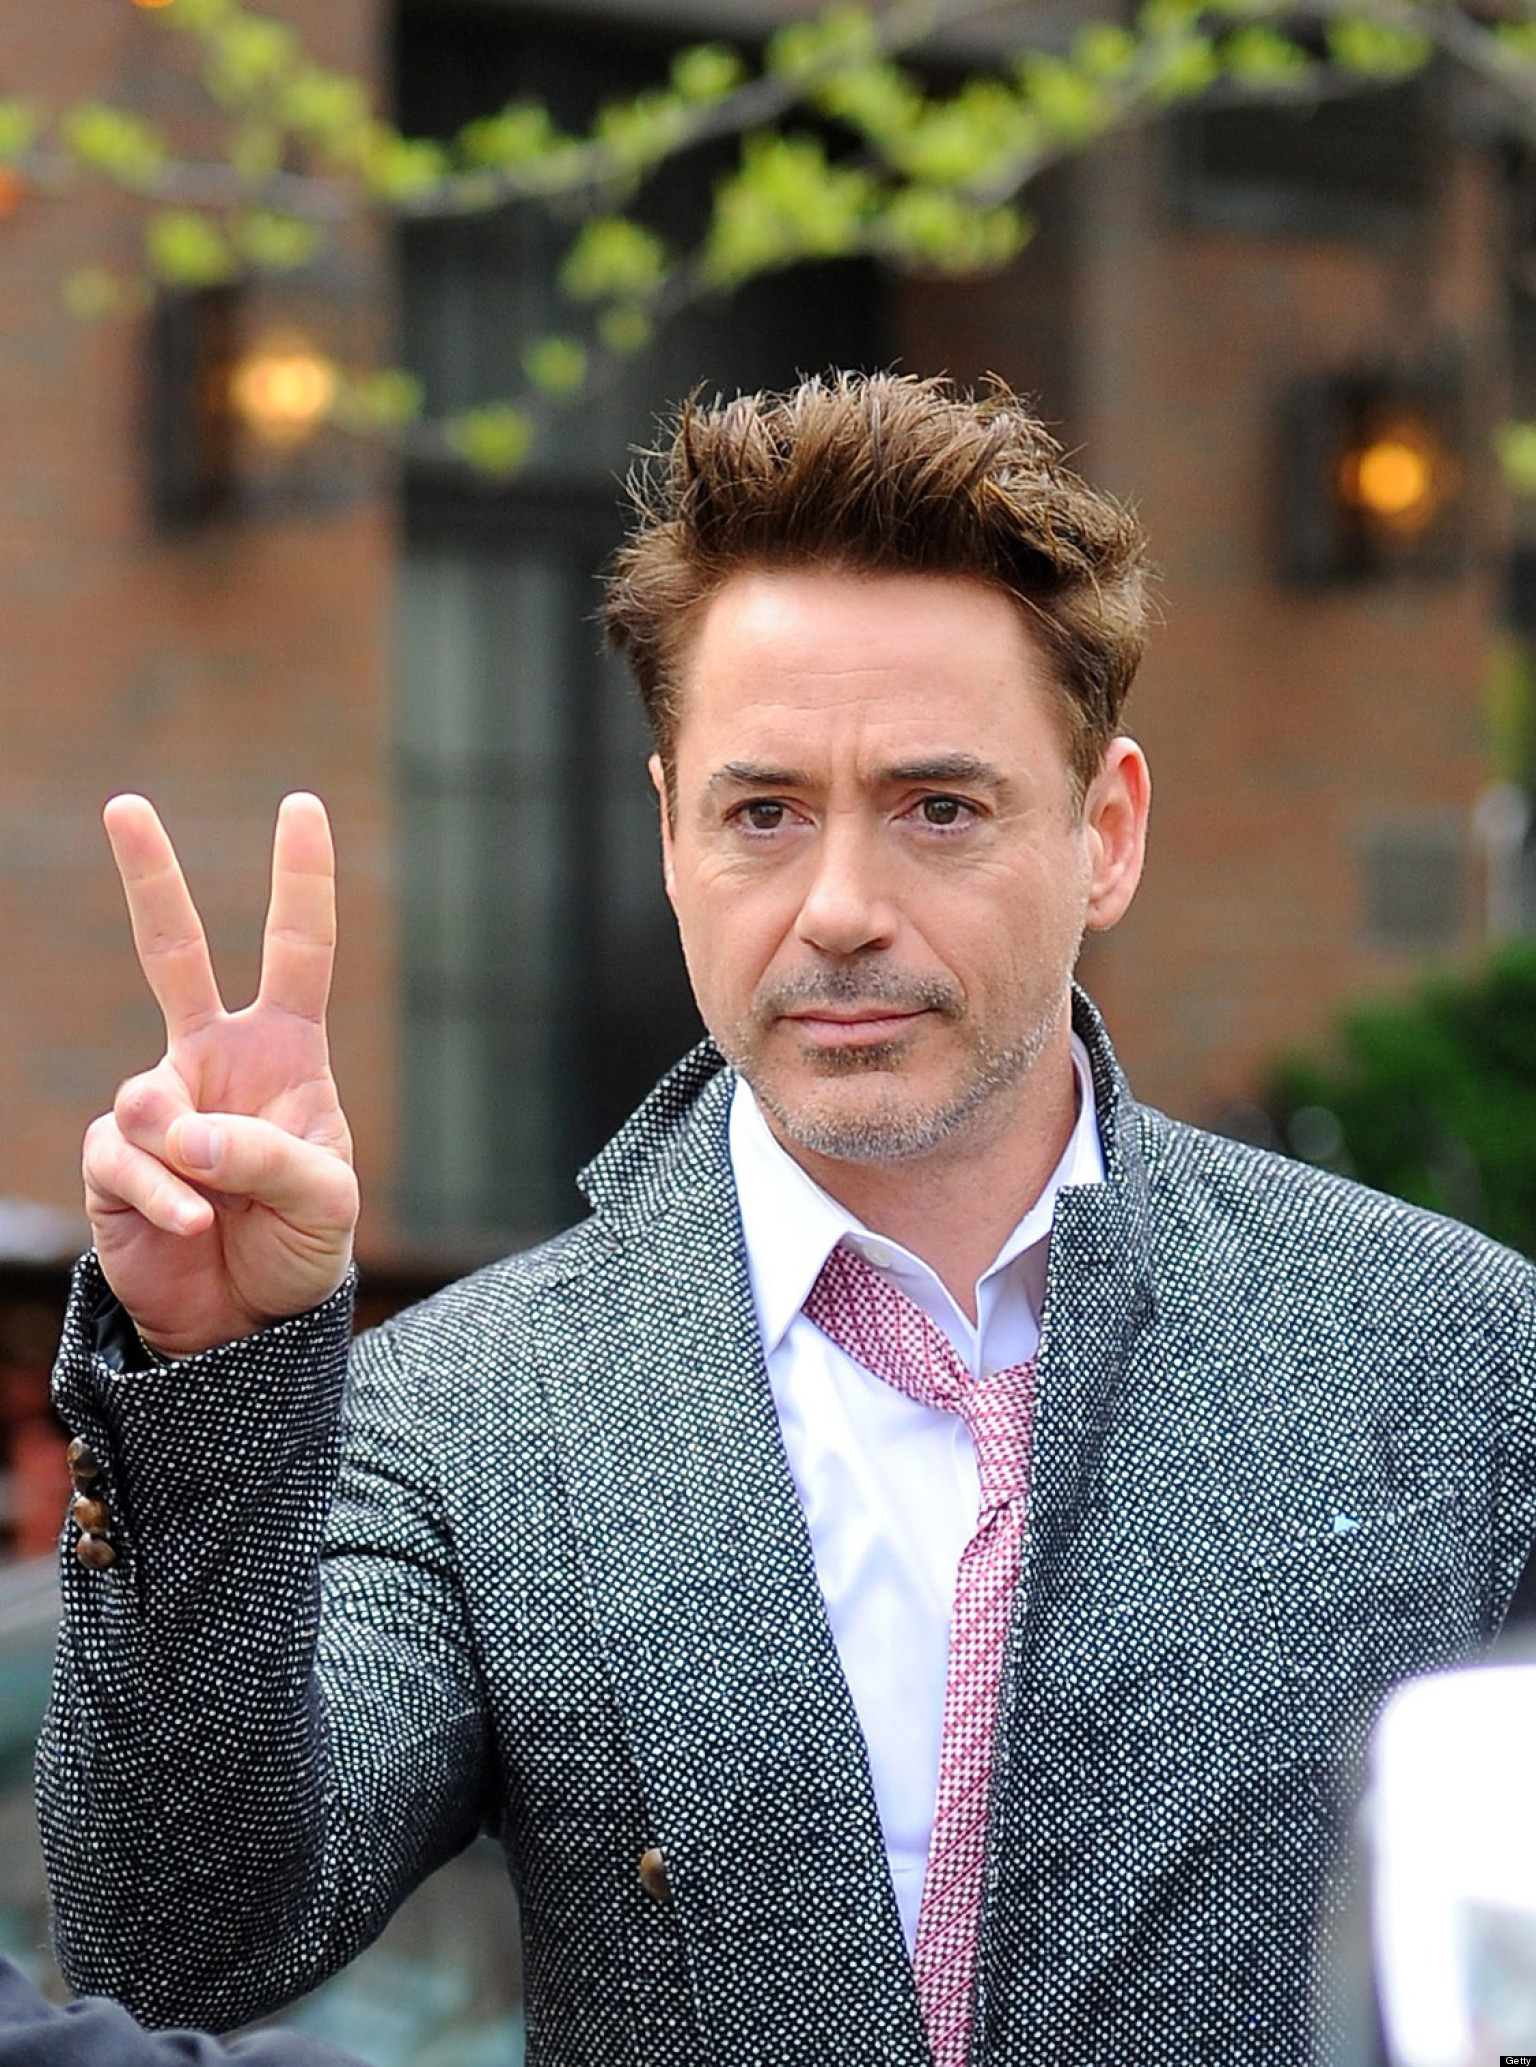 Robert Downey Jr In Avengers 2 Amp 3 Iron Man Signs